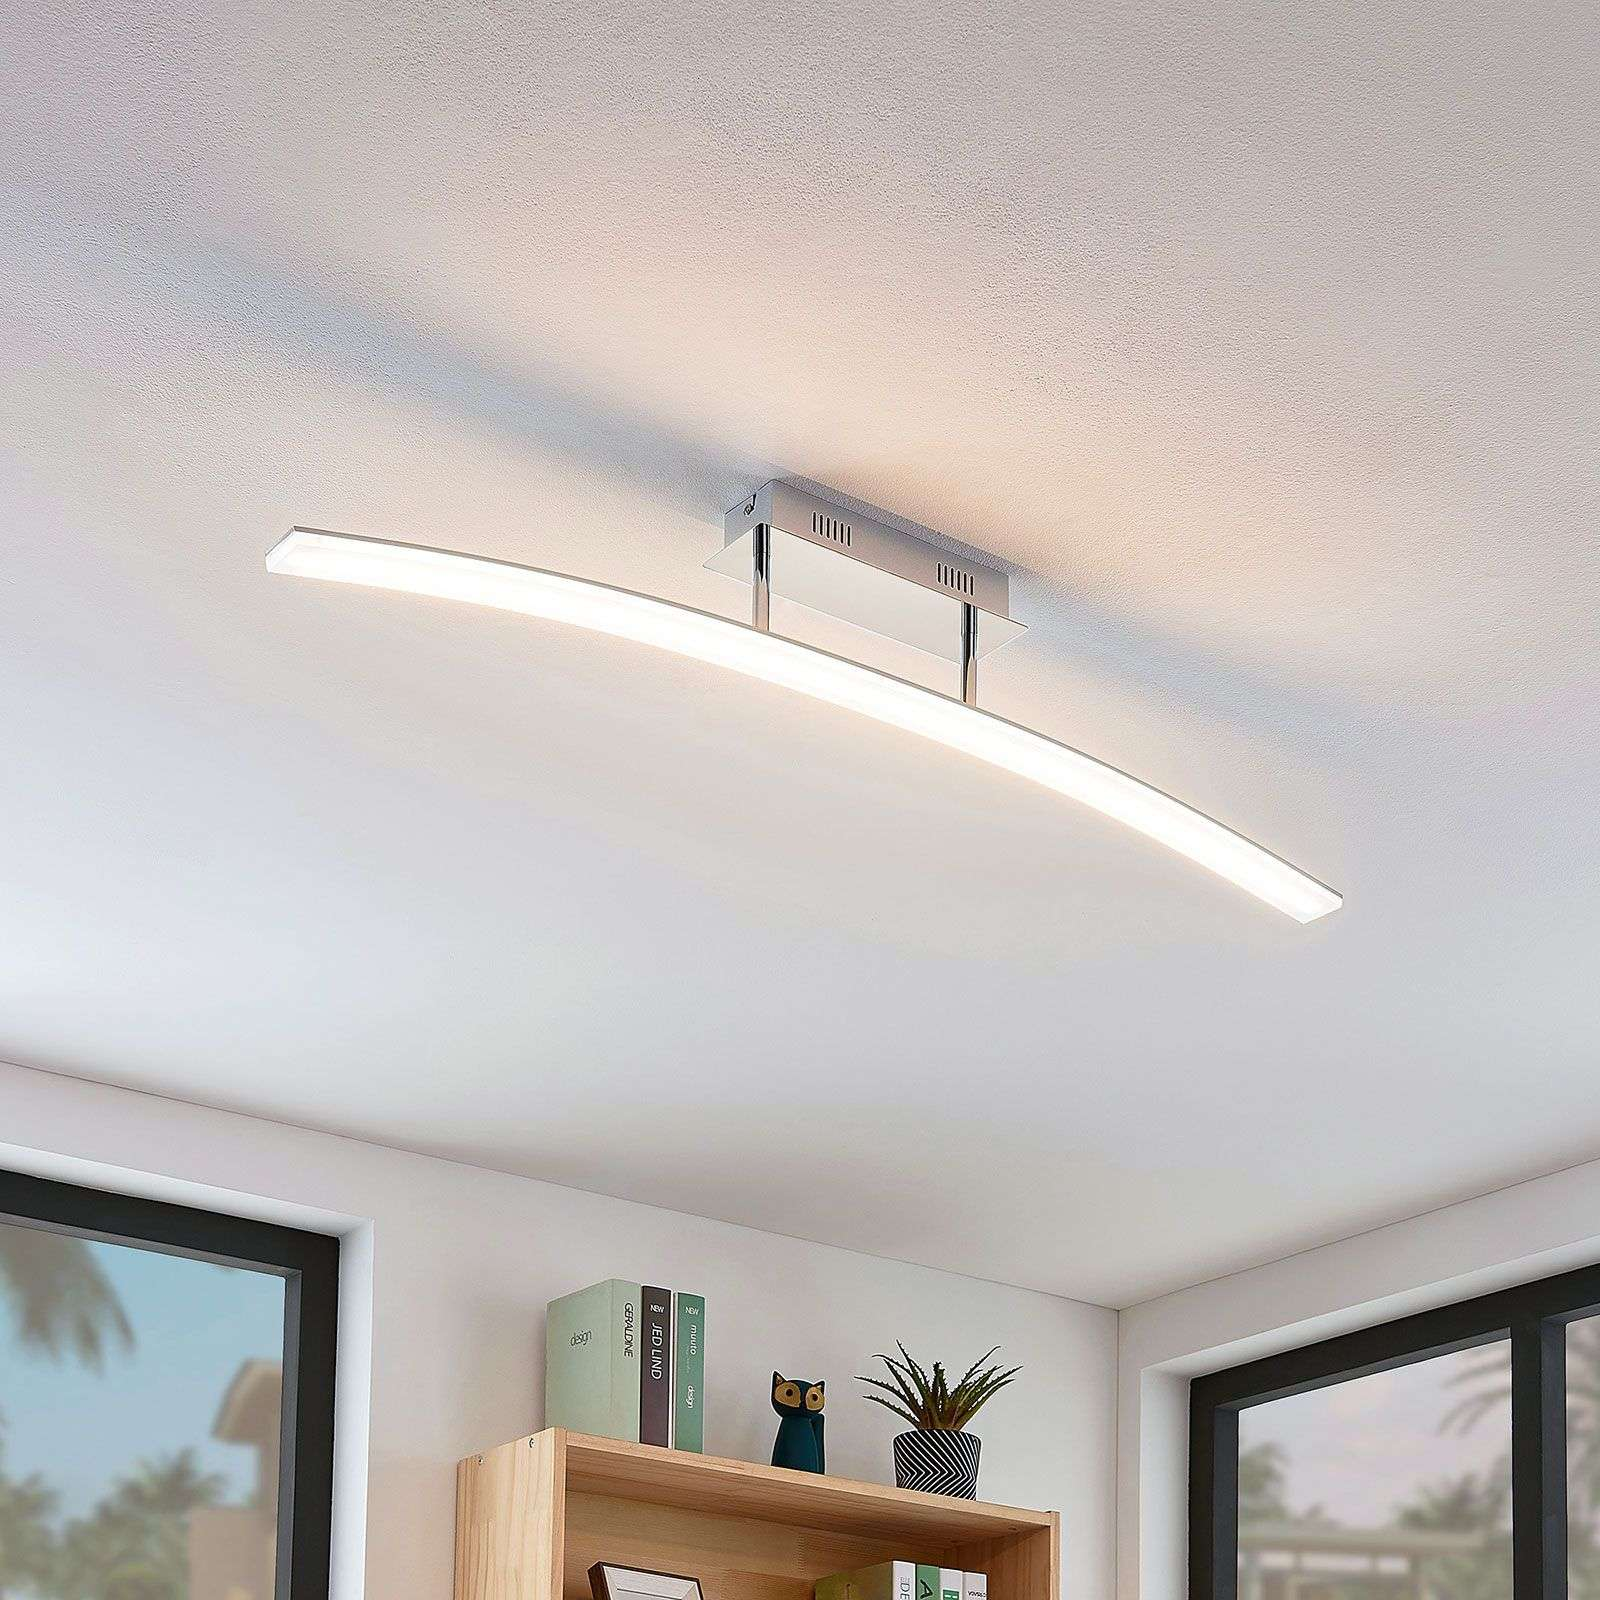 Ceiling Lights Company : Lorian led ceiling light curved lights